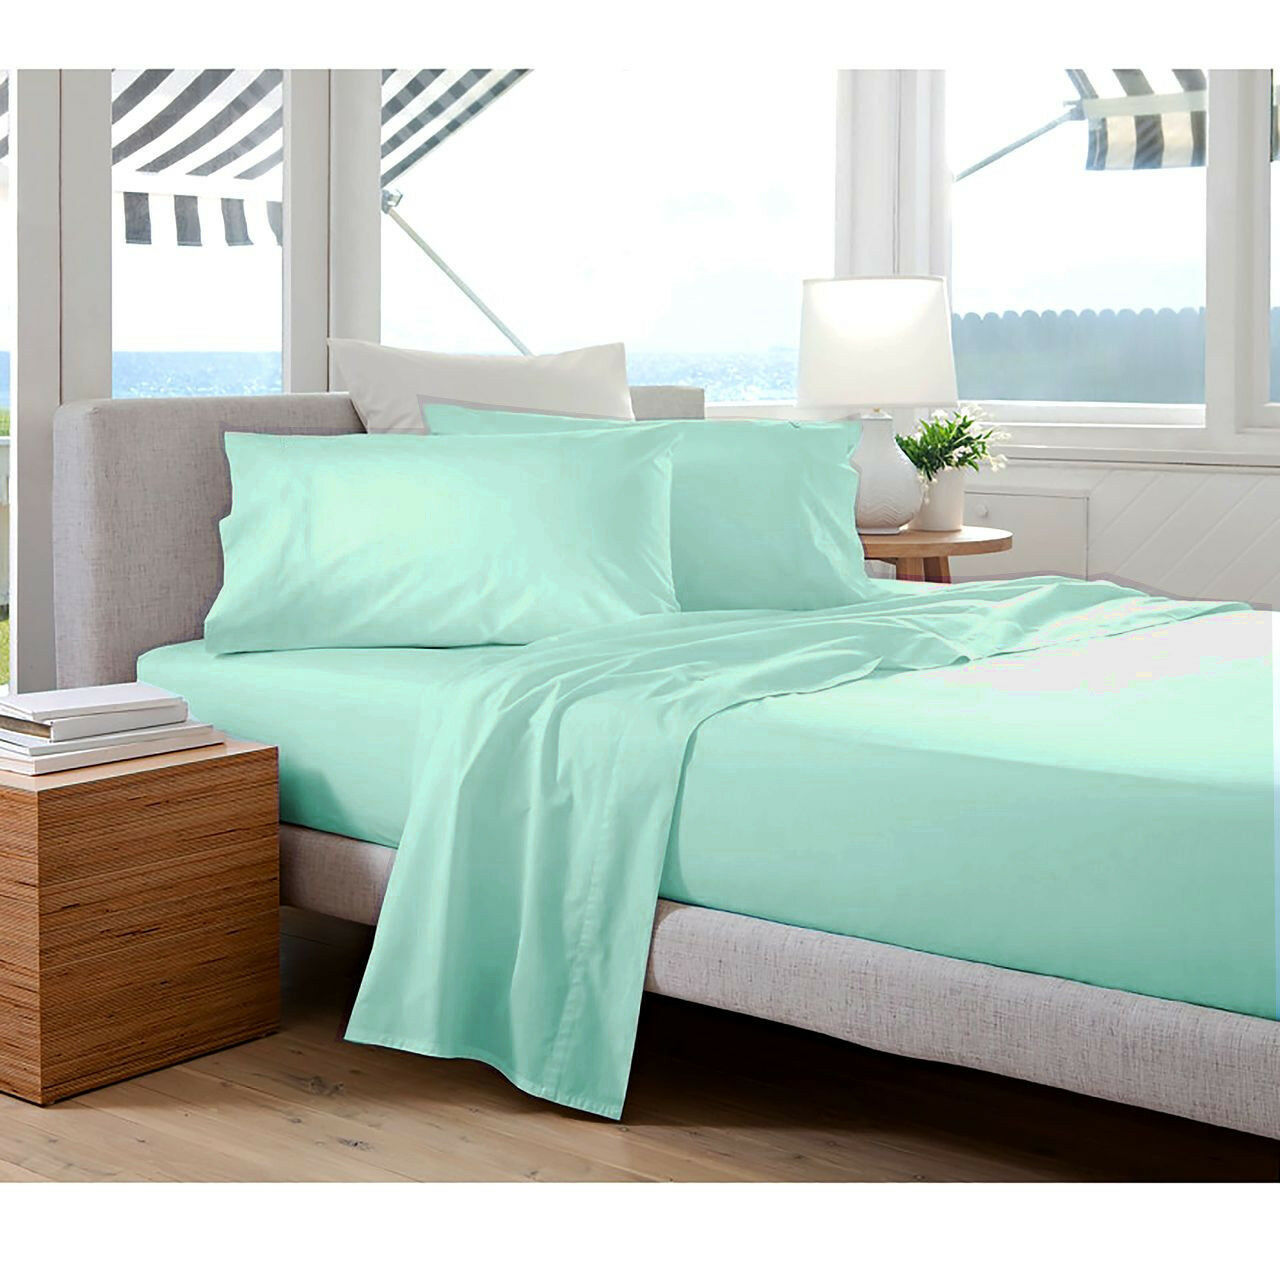 400 TC Egyptian Cotton ROUND BED SHEET SET Percale Ice blueeeee